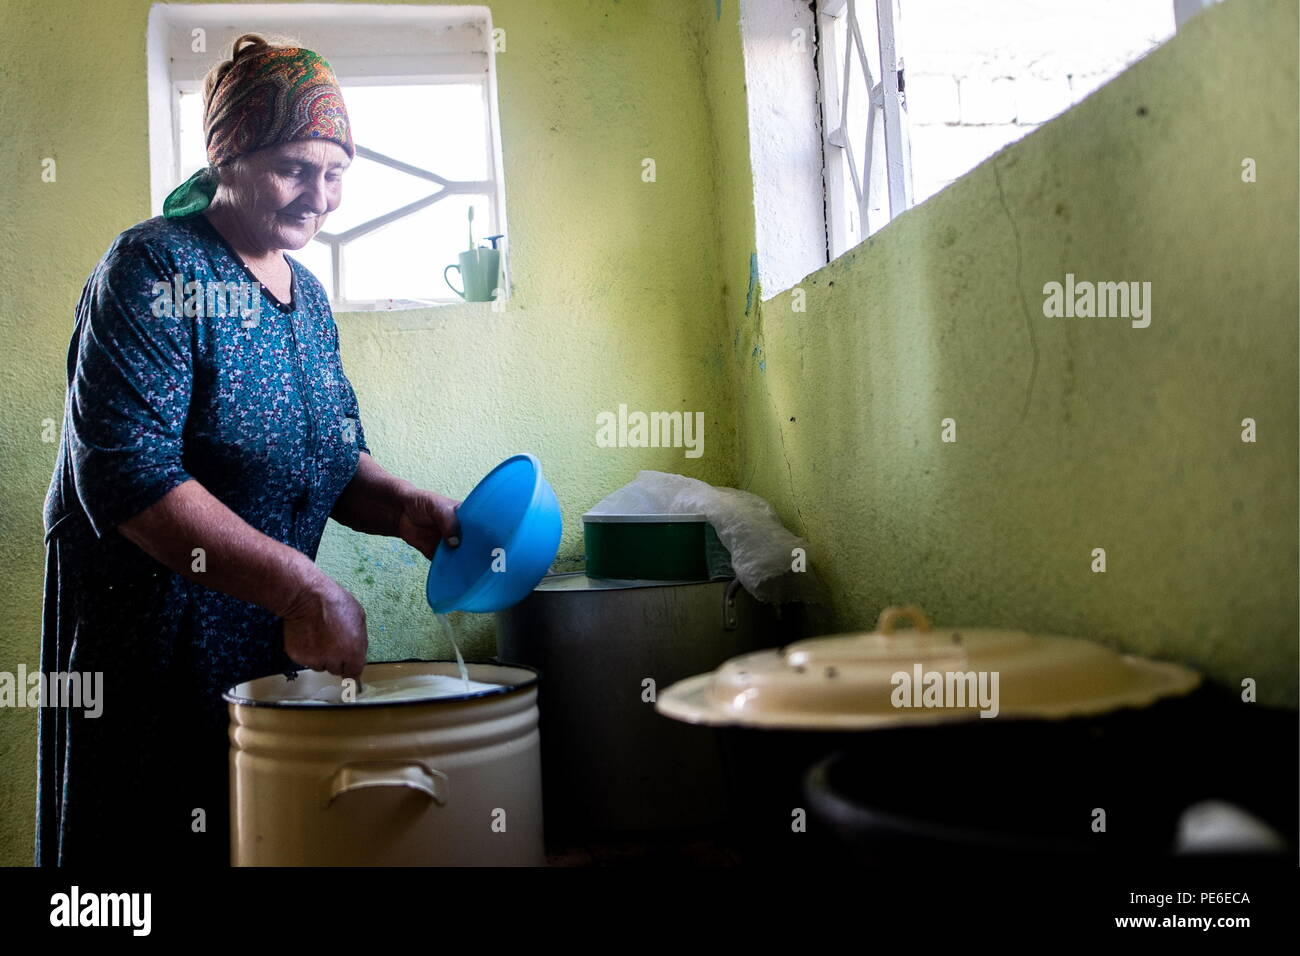 South Ossetia. 11th Aug, 2018. SOUTH OSSETIA - AUGUST 11, 2018: Margarita Madzigova, 63, makes home cheese in the village of Khetagurovo, Tskhinvali District, South Ossetia; Margarita and her husband Alikhan have been running a farm since their house was restored after the 2008 South Ossetian-Georgian military conflict. Sergei Bobylev/TASS Credit: ITAR-TASS News Agency/Alamy Live News - Stock Image